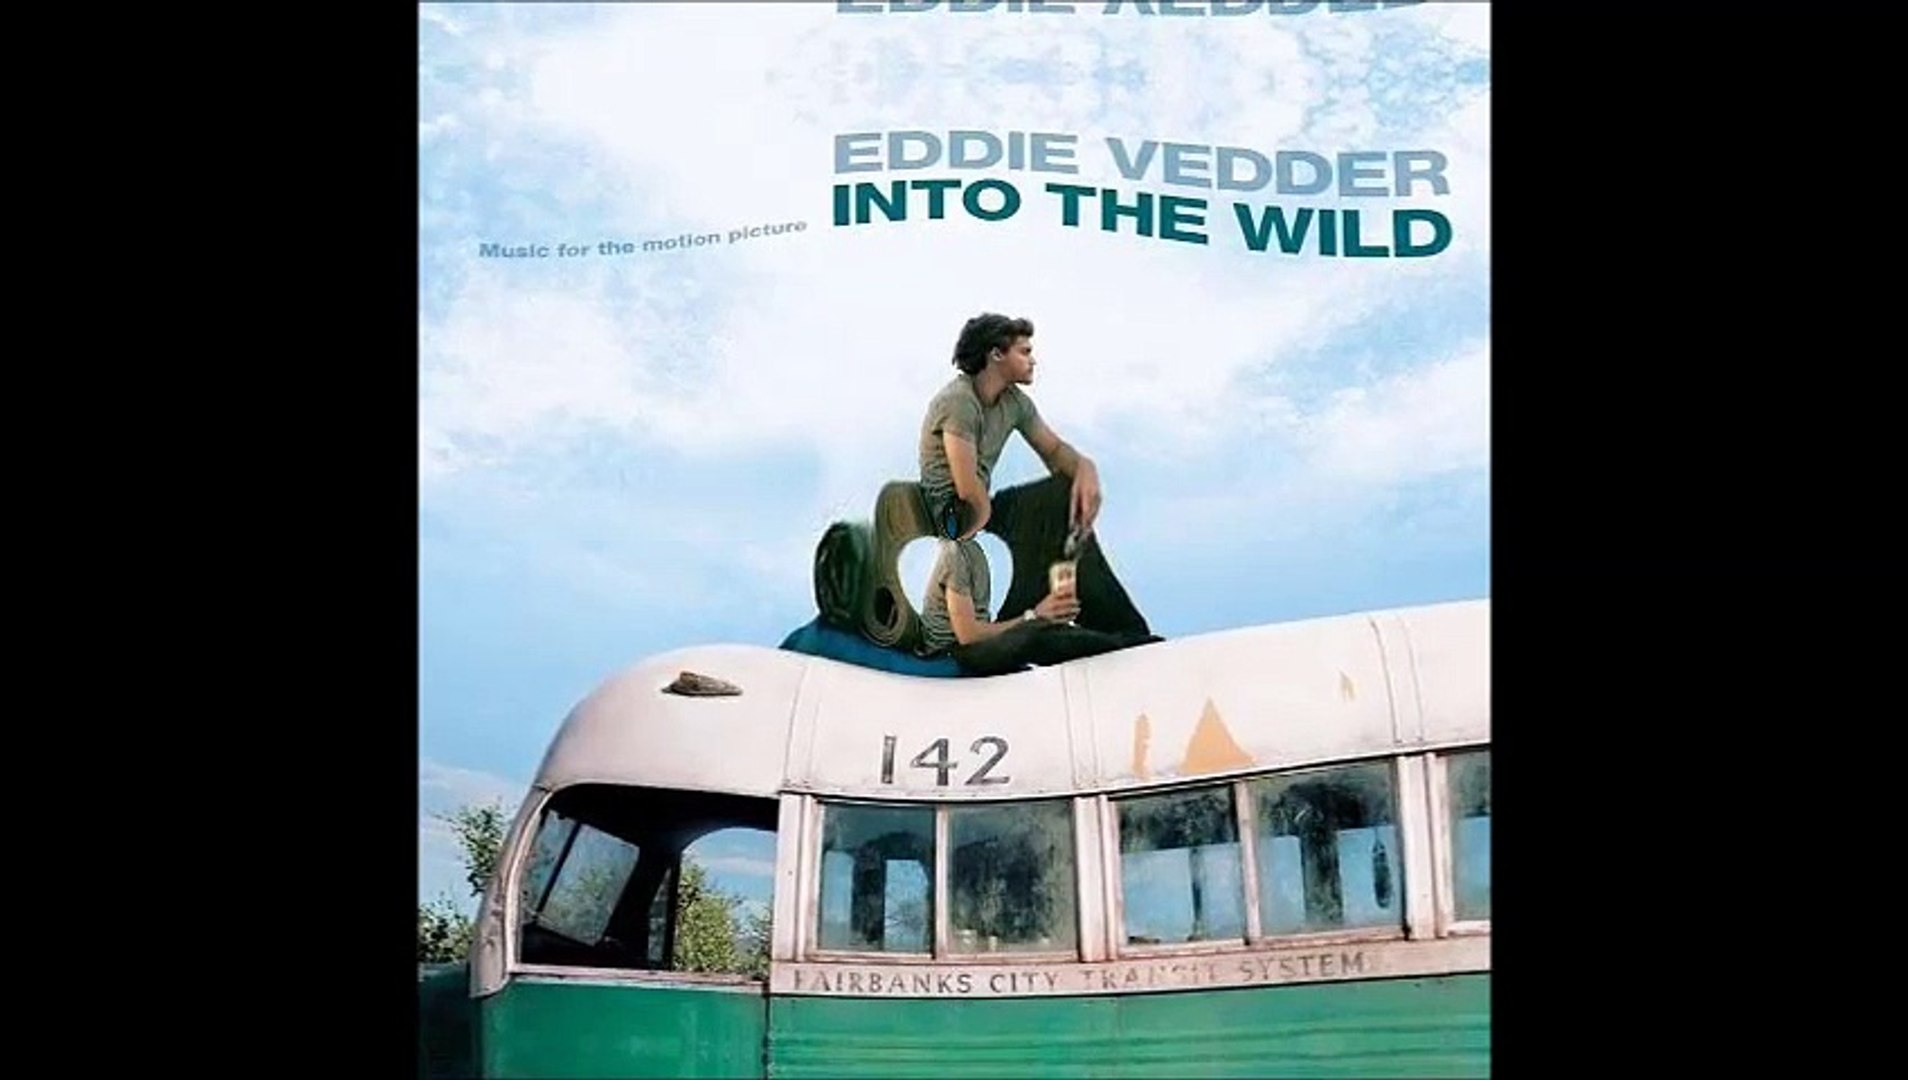 Eddie Vedder - Long nights (Bastard Batucada Noites Remix)